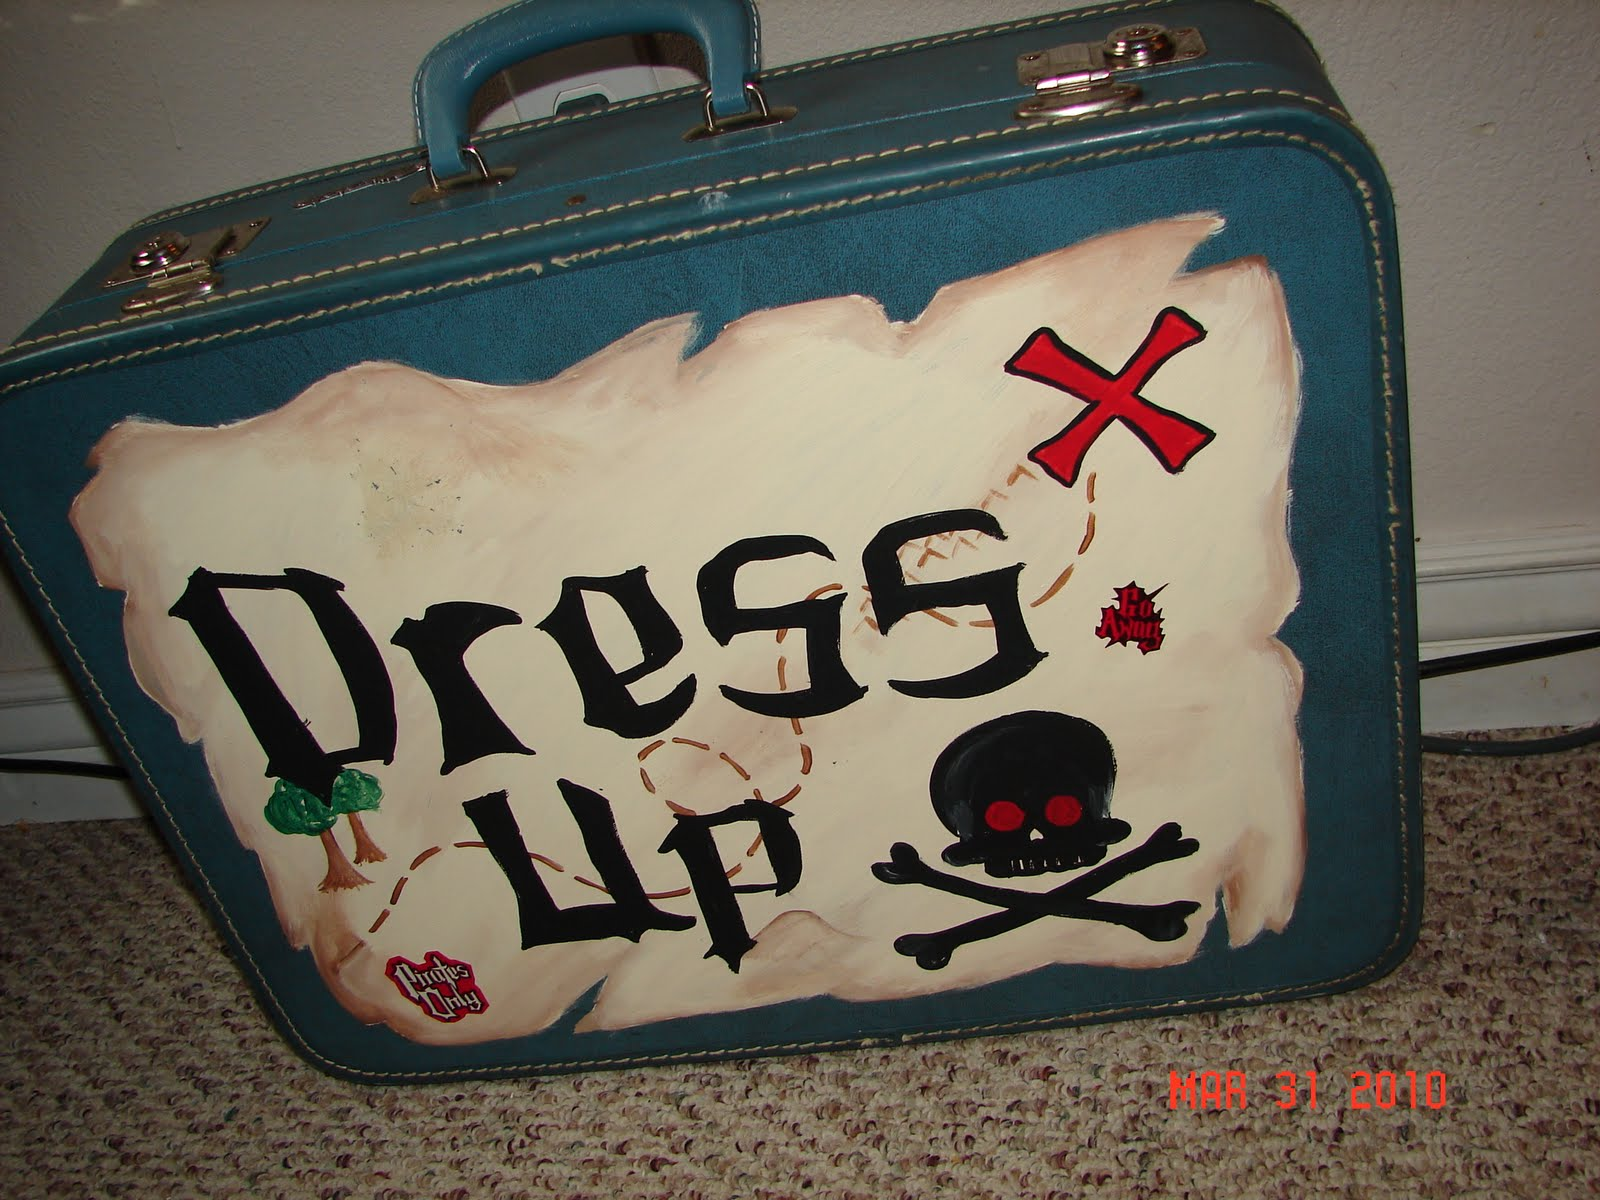 thrift store take 3 boy dress up clothes suitcase a and a